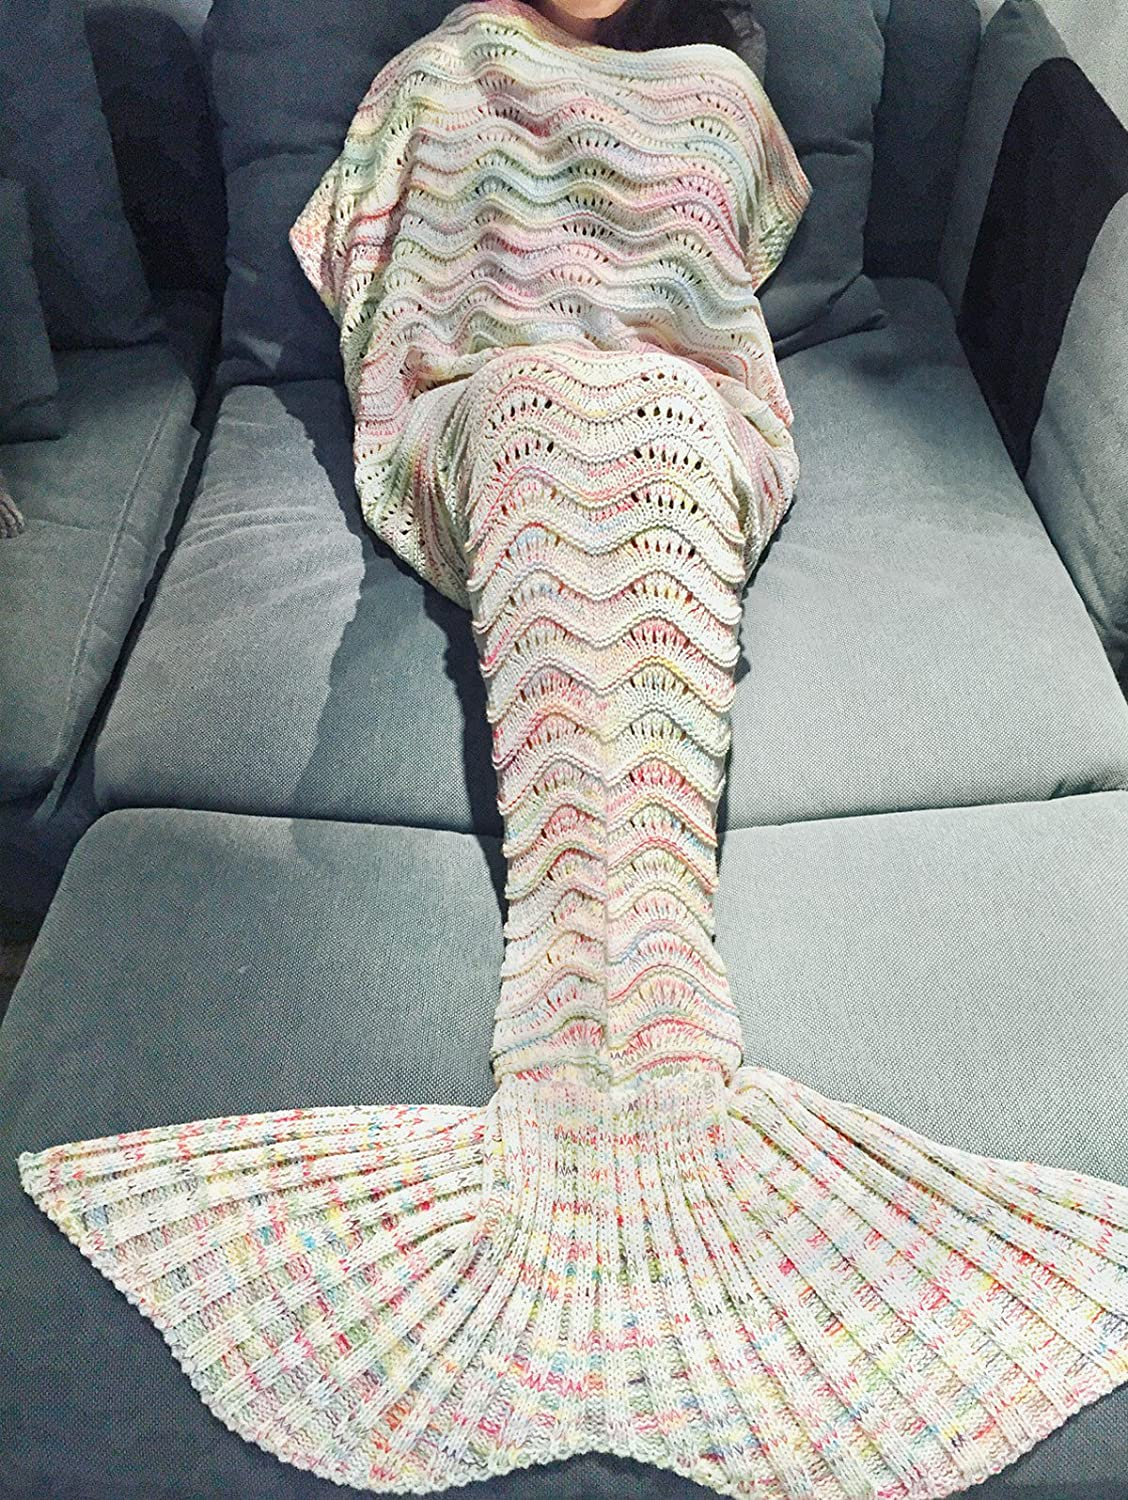 Top 10 Best Mermaid Tail Blankets (2020 Reviews & Buying Guide) 9